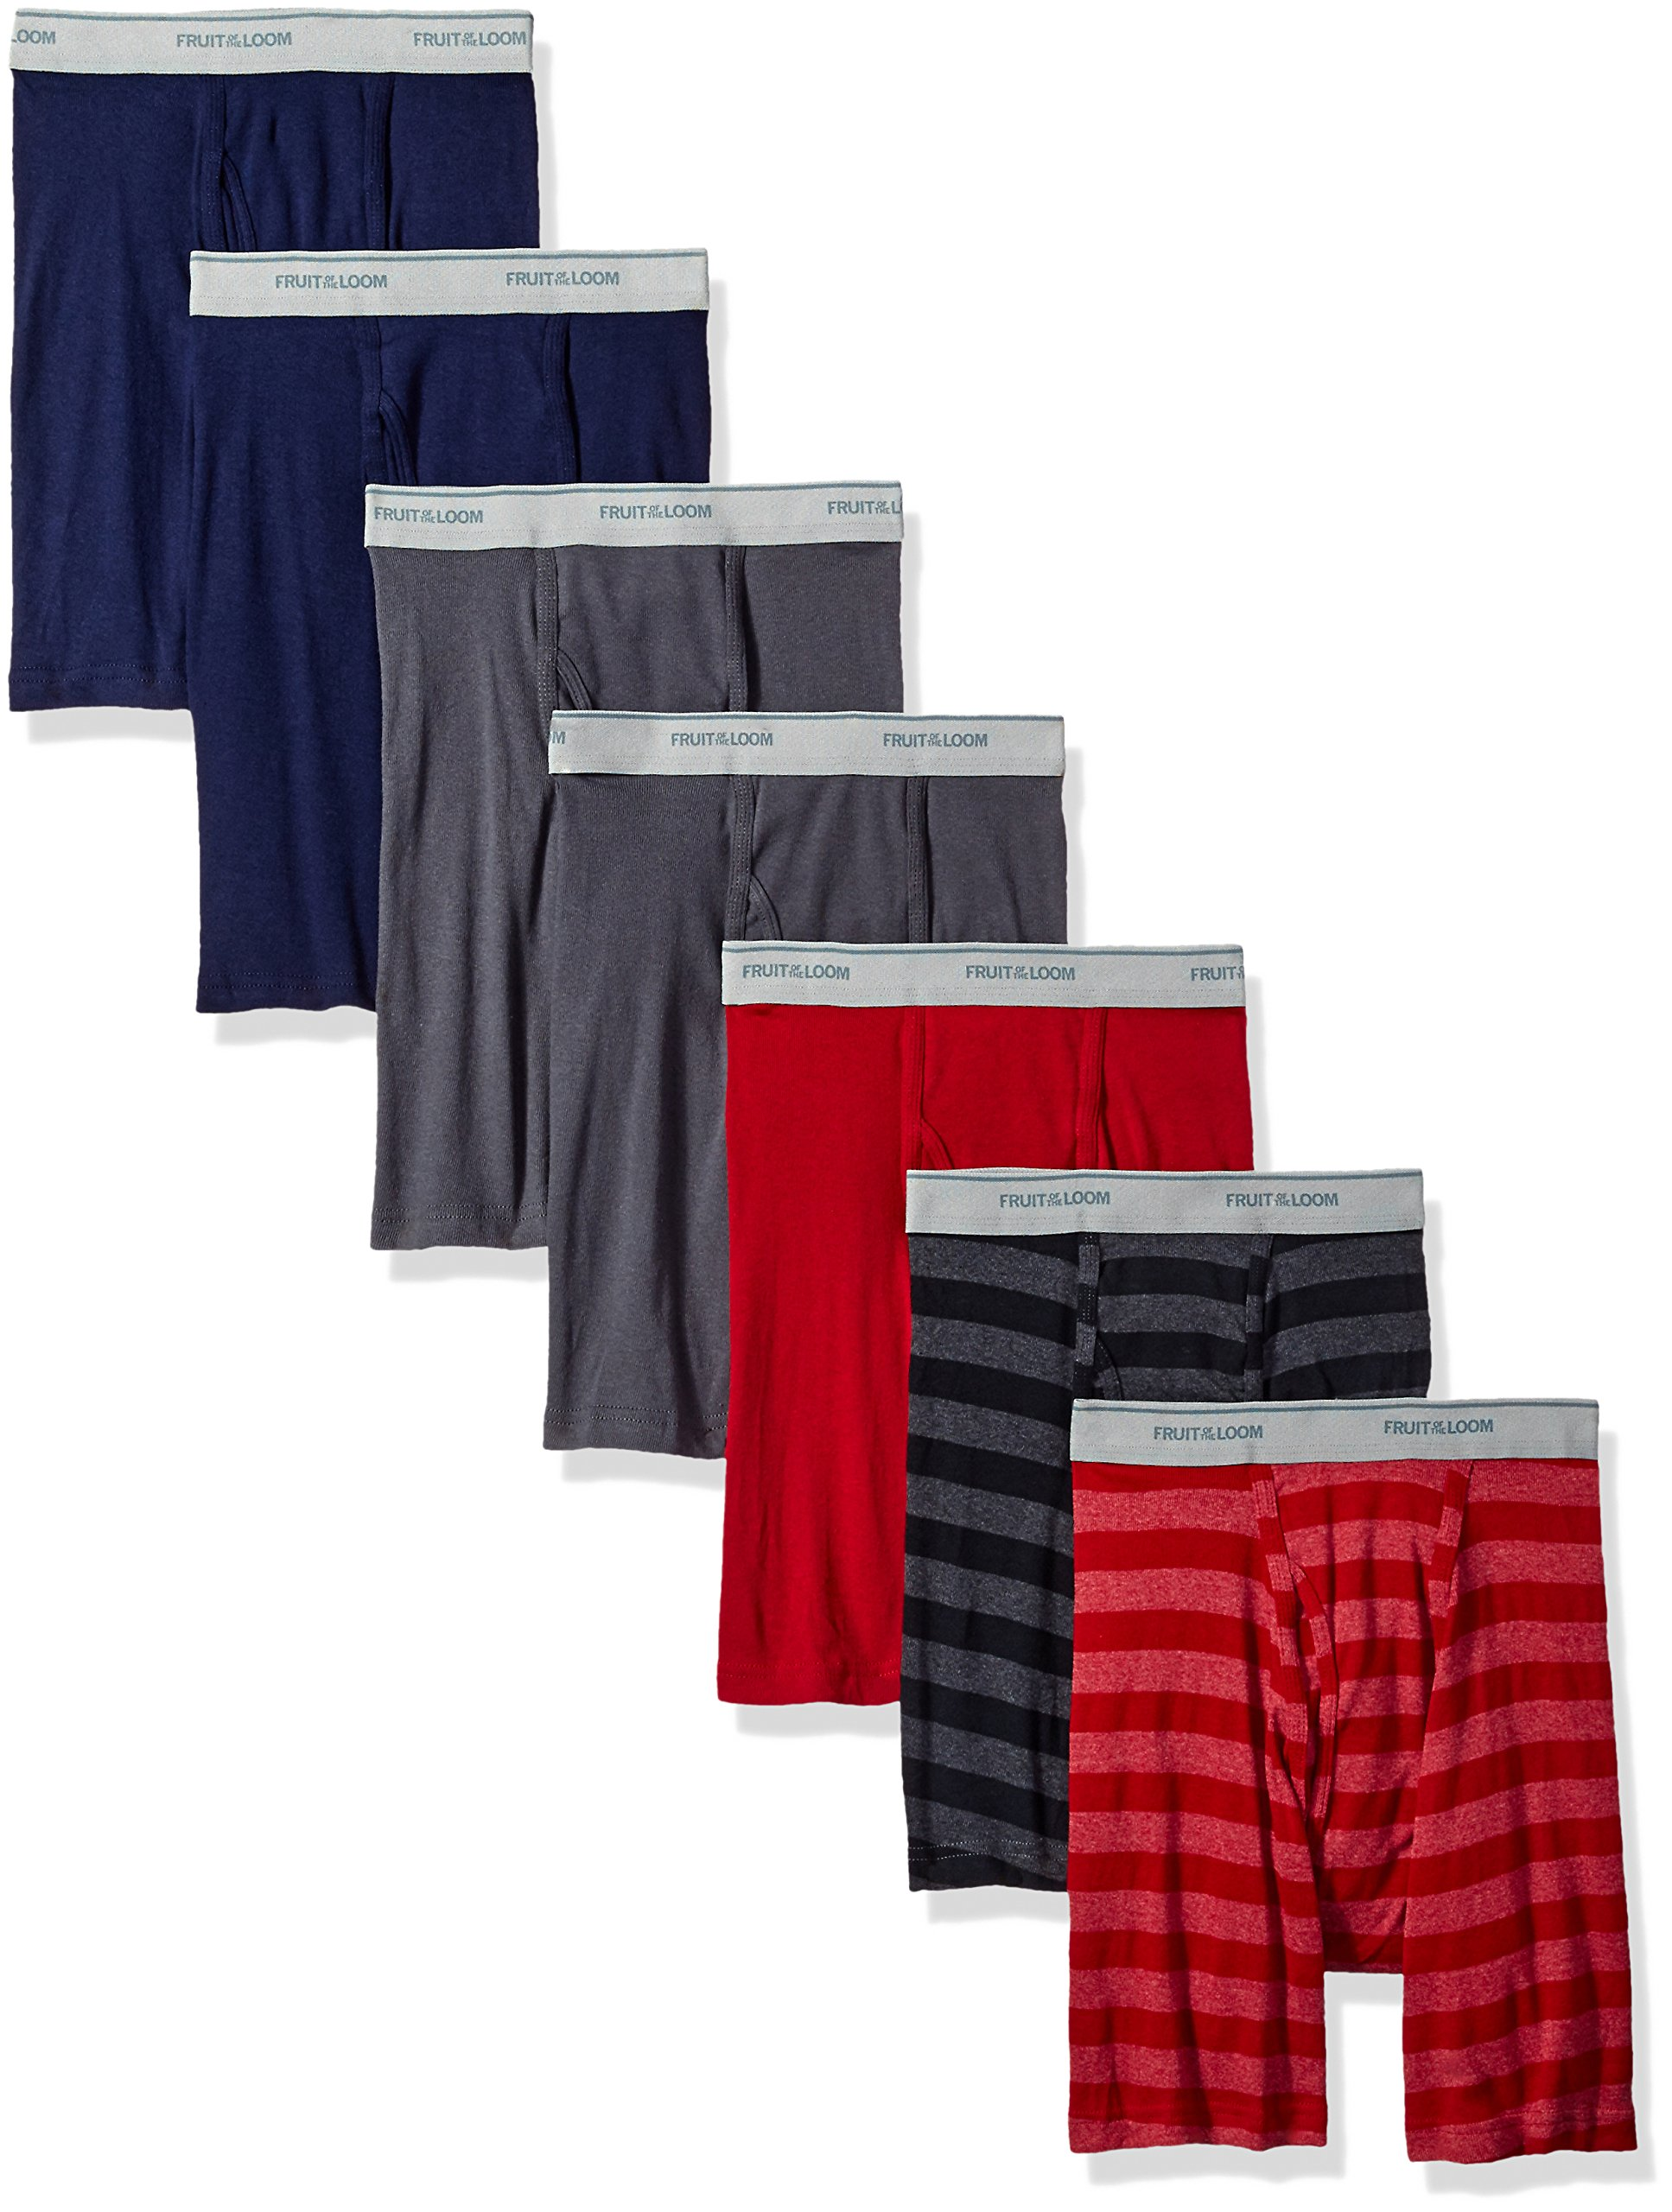 Fruit of the Loom Men's Boxer Brief (Pack of 7), Assorted - Blues, Grays, Reds, Medium